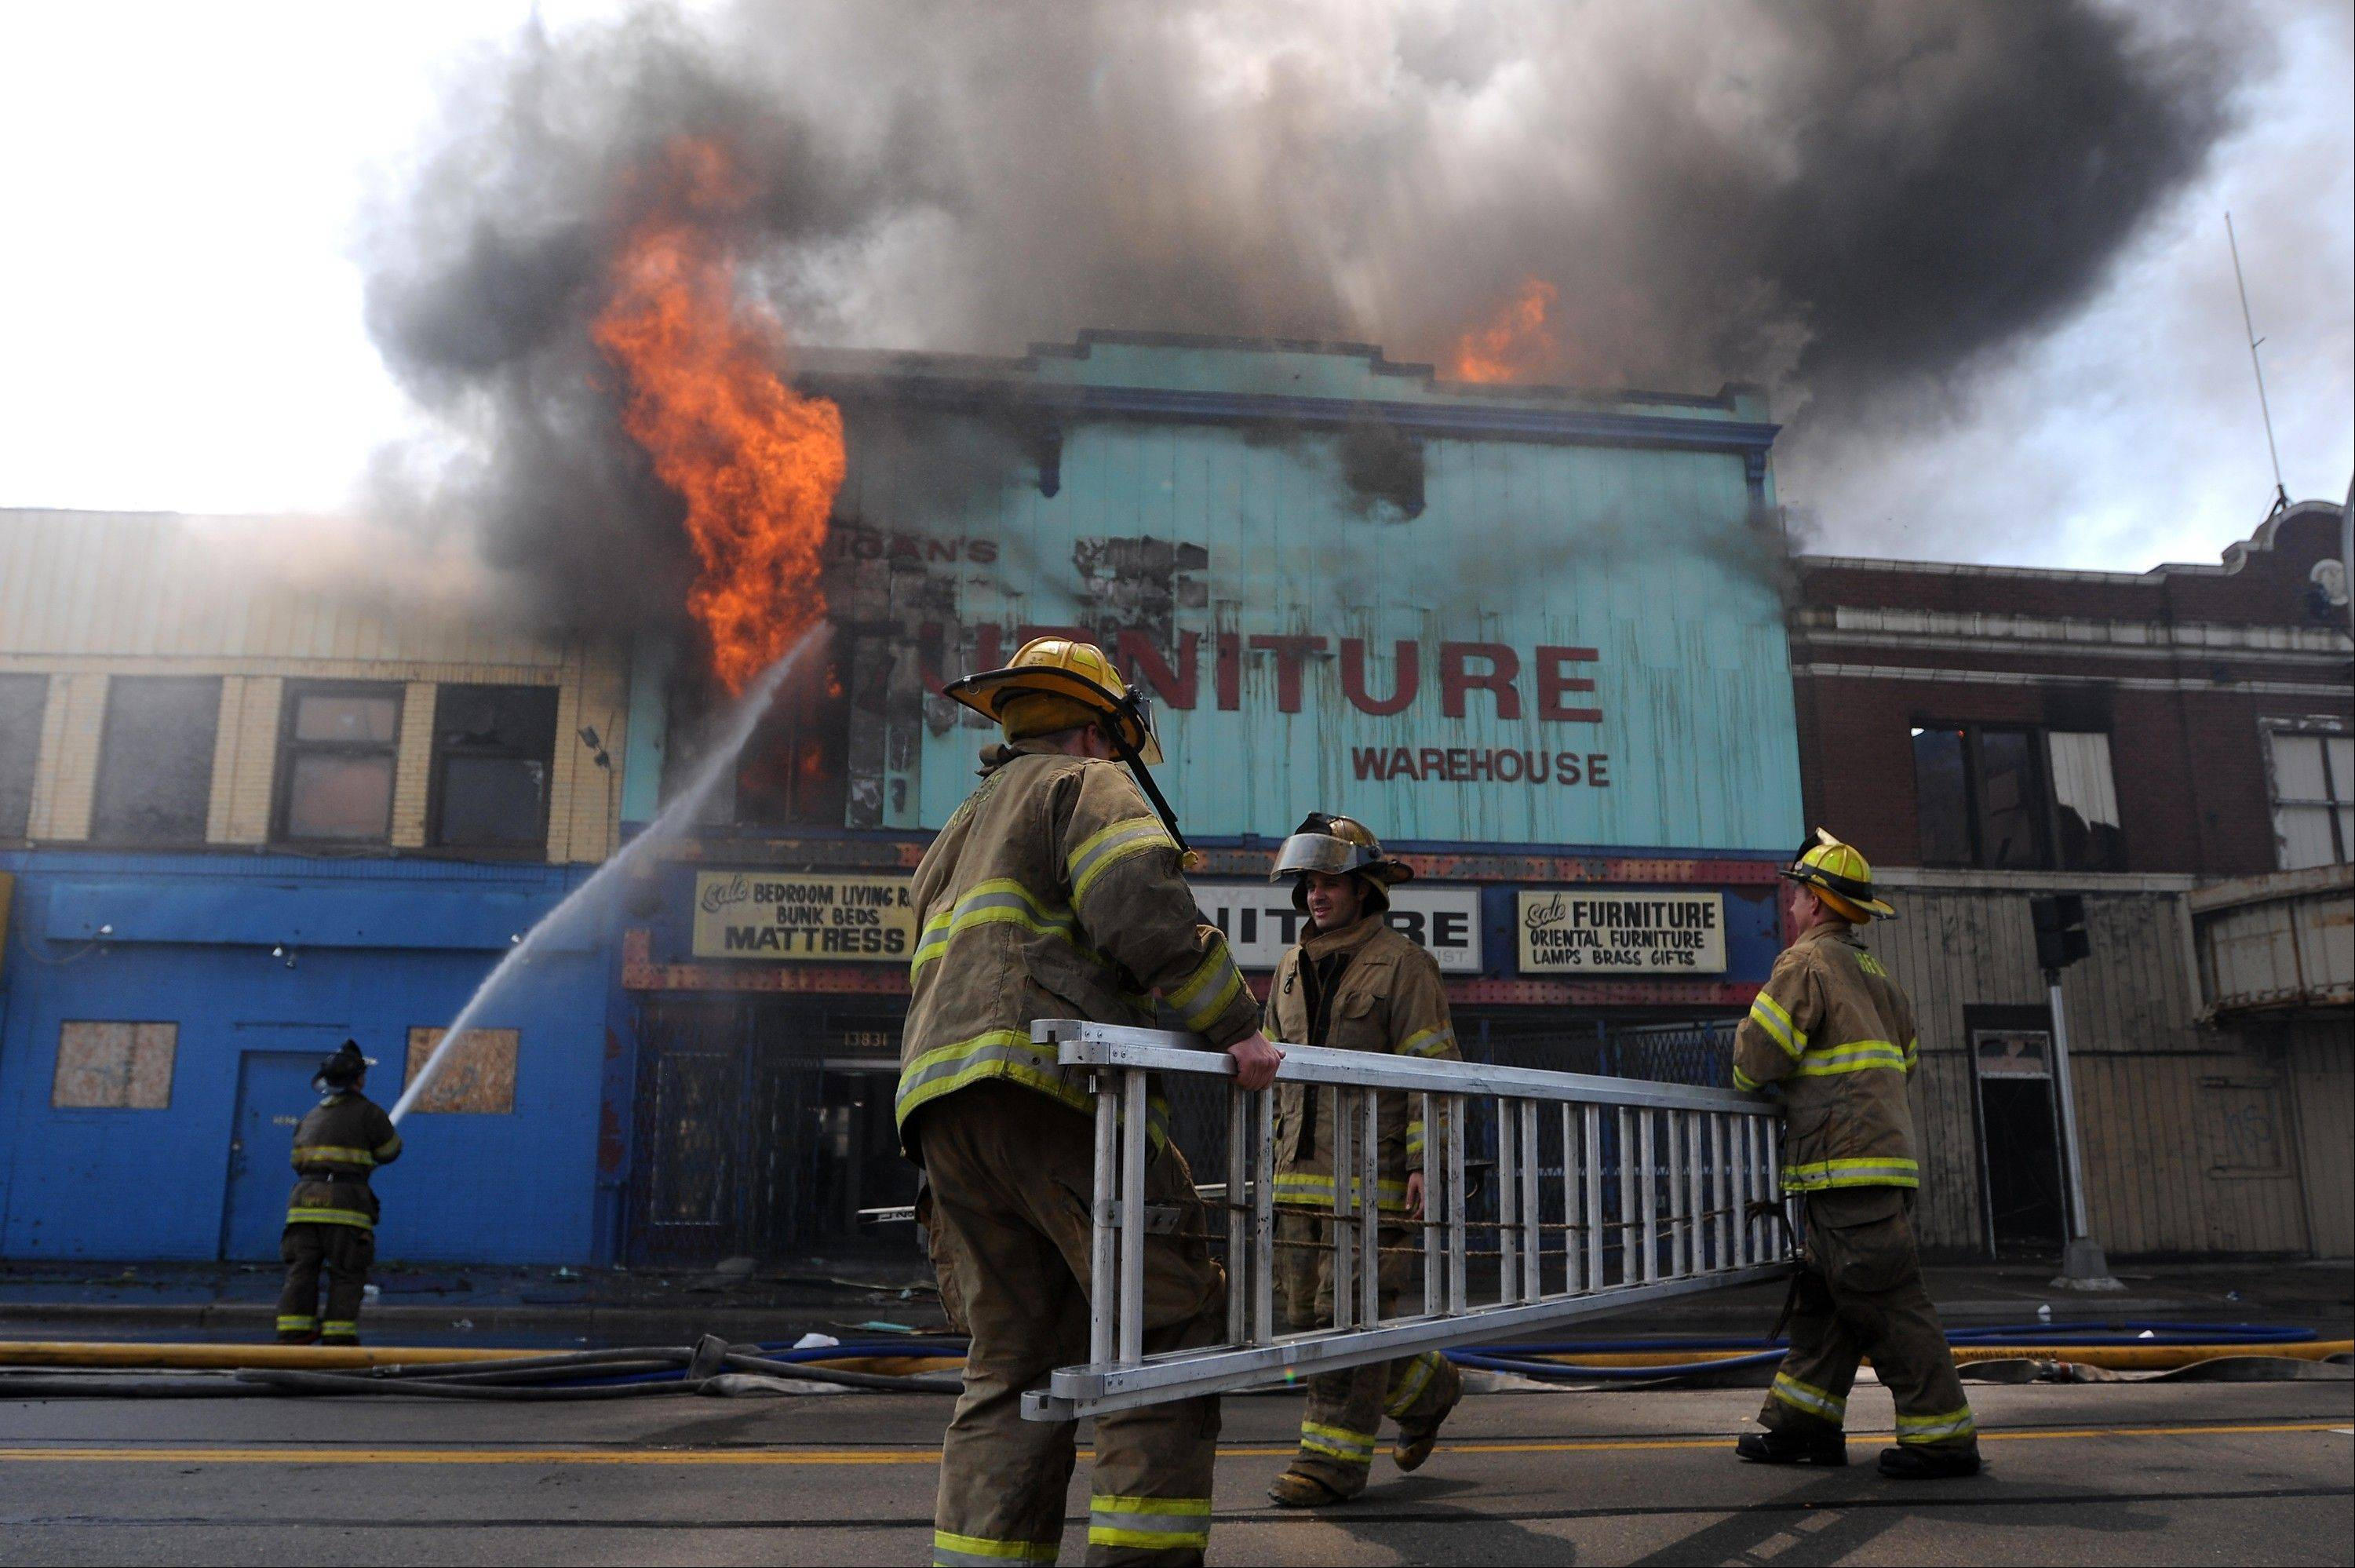 A report filed Monday by Detroit's emergency manager said the city is broke and without a massive infusion of cash or severe penny-pinching will be unable to pay for its services, including firefighting. Above, Detroit firefighters battle a building fire.